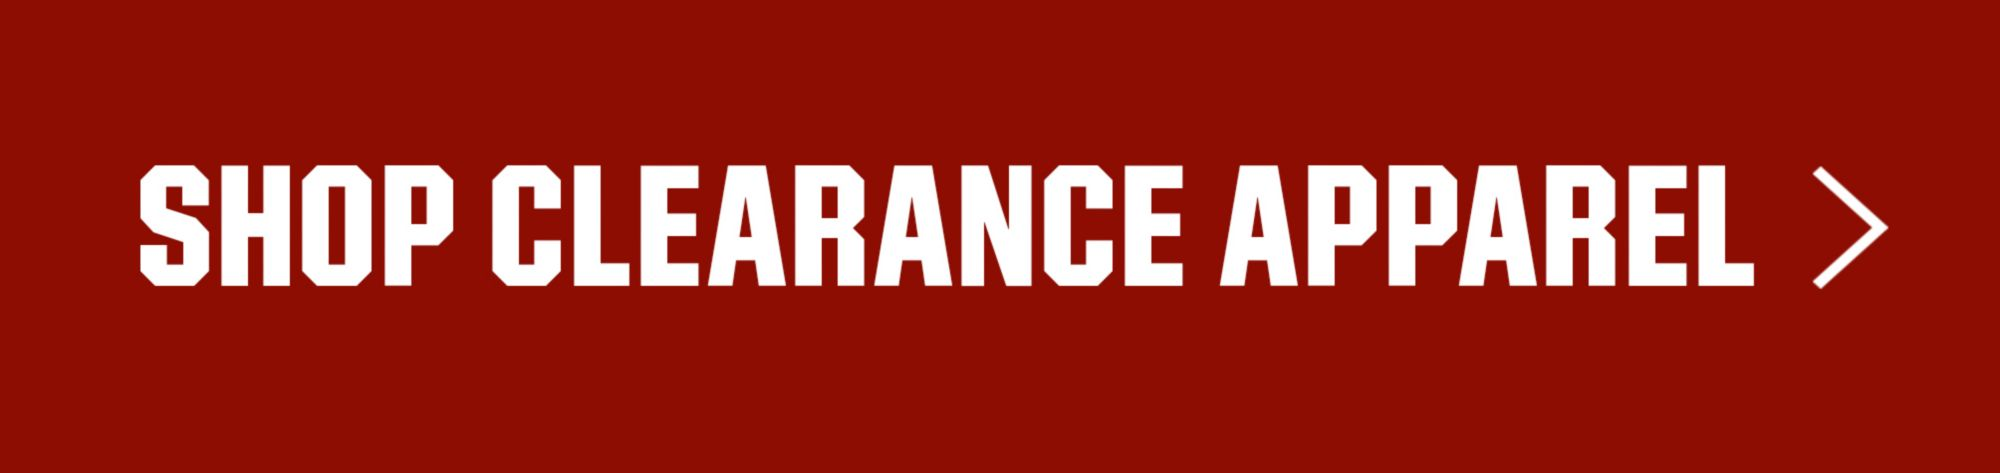 Shop Clearance Apparel